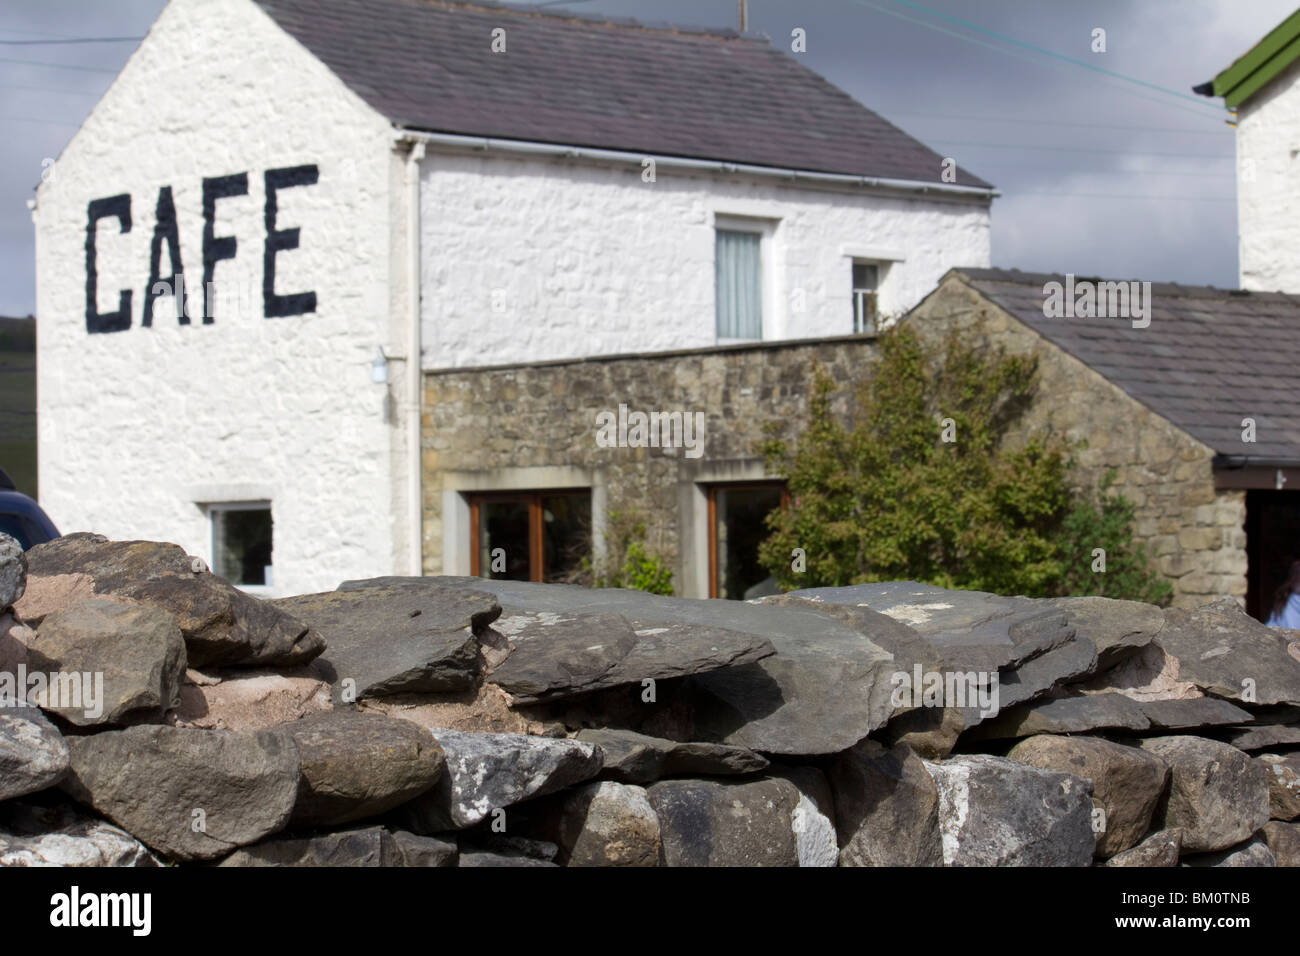 Three Peaks Cafe, Horton-In-Ribblesdale - Stock Image